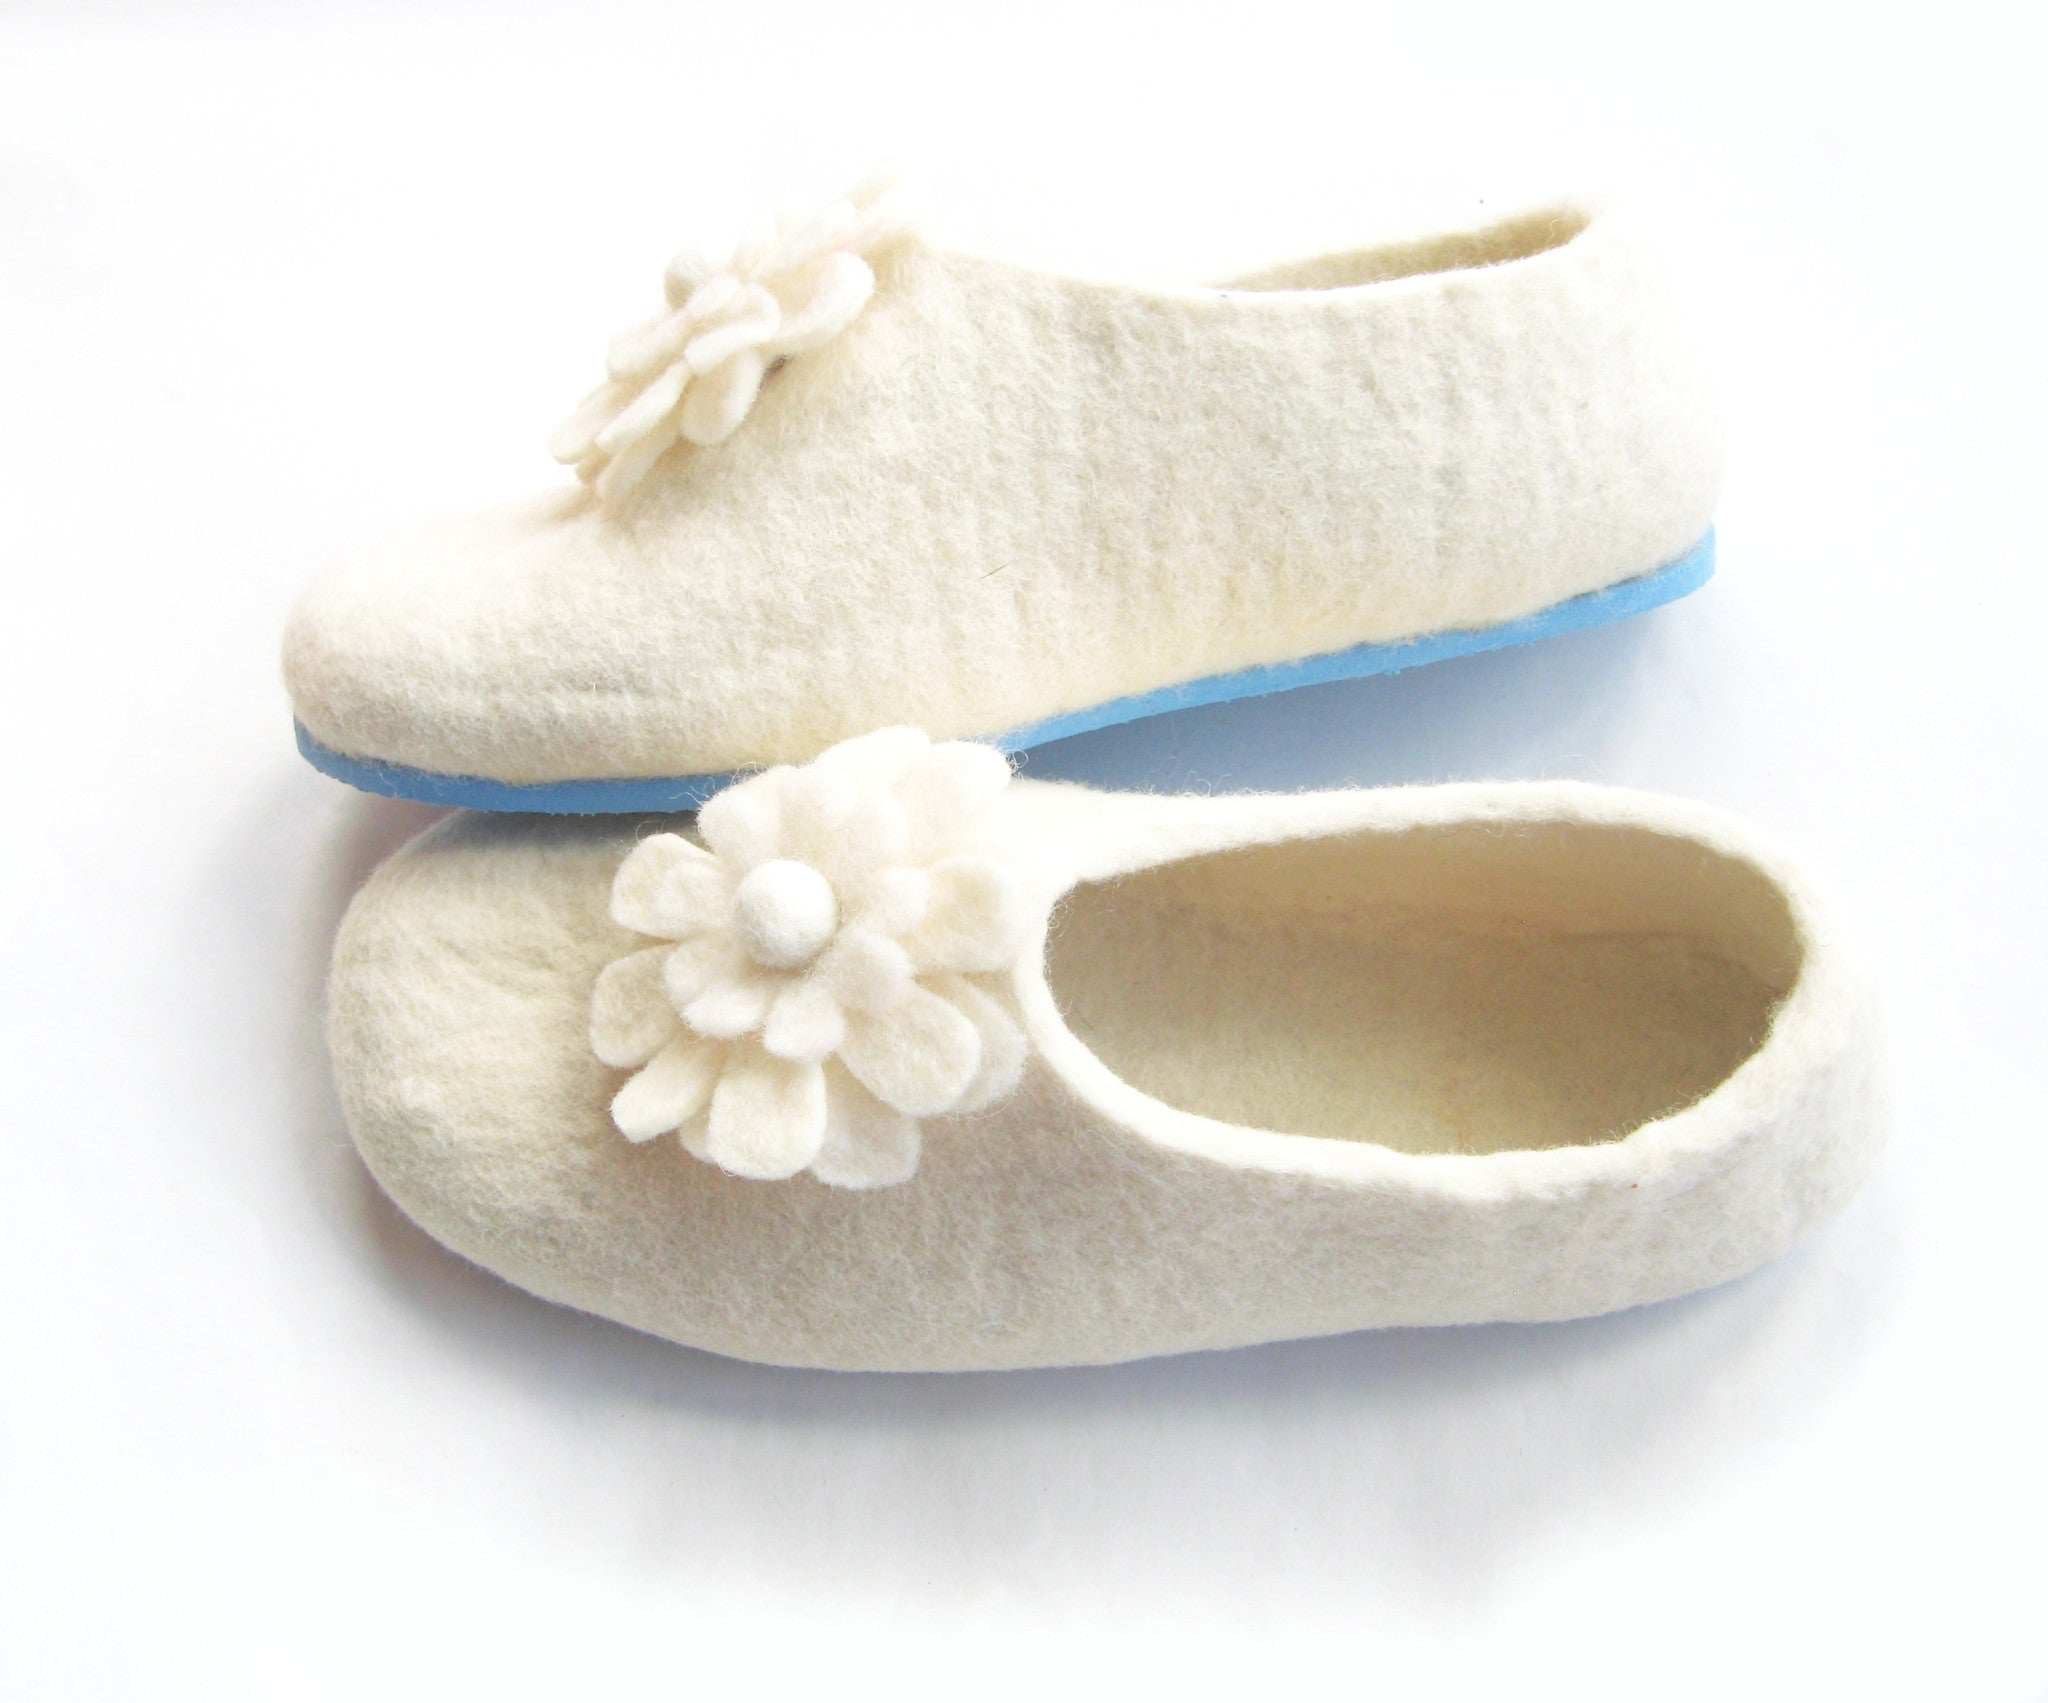 Womens Bridal Felt Slippers White Contrast Sole - Wool Walker  - 1